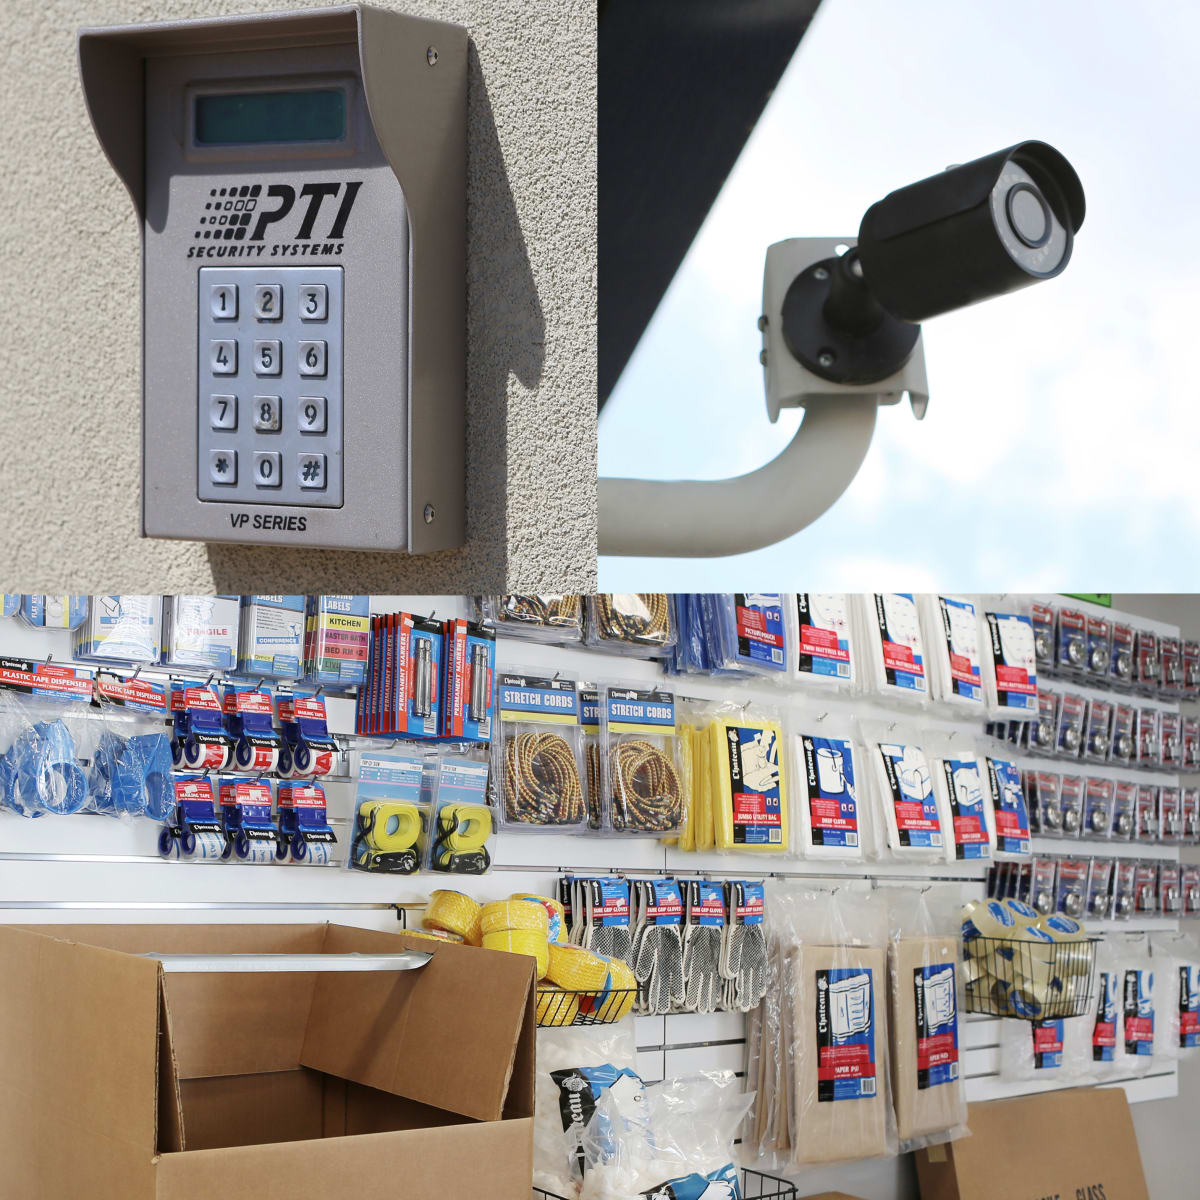 We provide 24 hour security monitoring and sell various moving and packing supplies at Midgard Self Storage in Eastanollee, Georgia